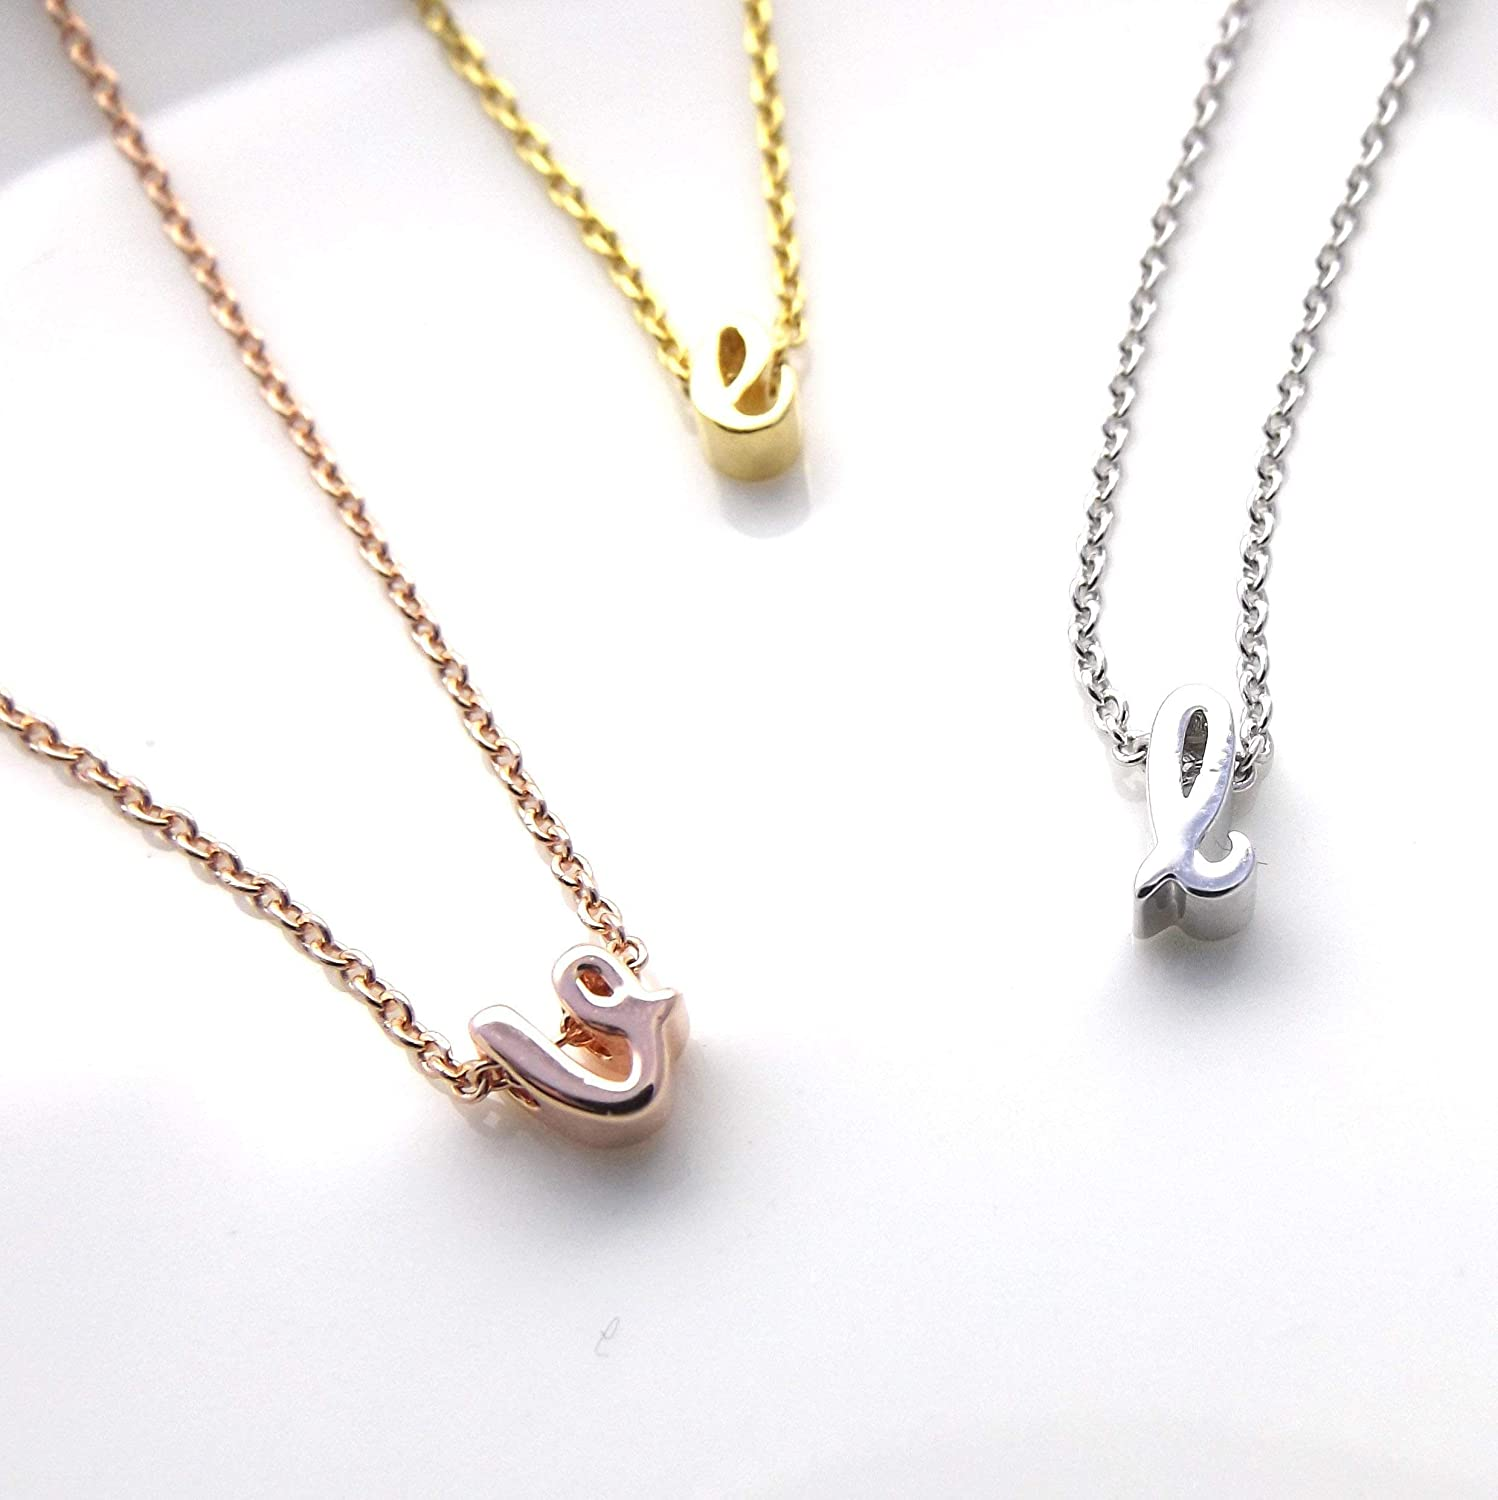 Dainty little Necklace Small Gold Lowercase Letter Necklace Love Letters Personalized Letter Necklace Silver Letter Necklace